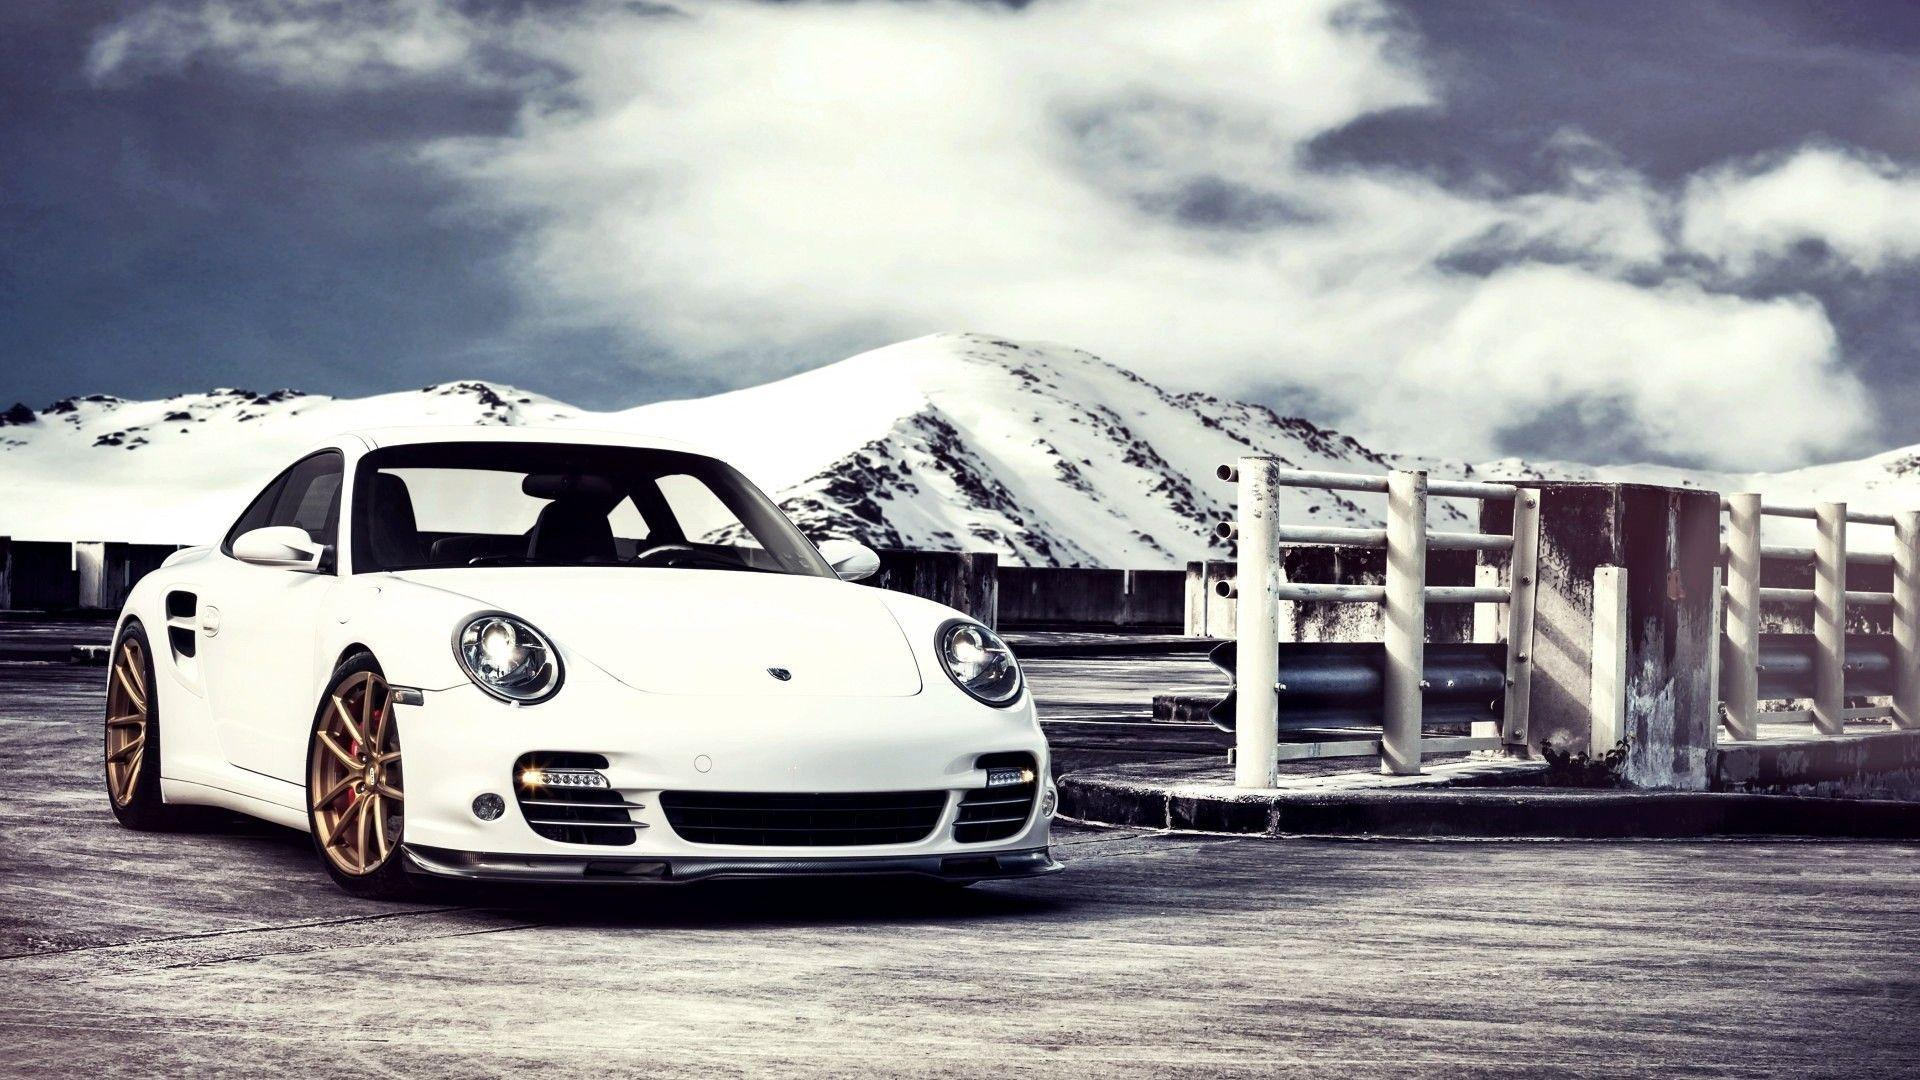 15 Excellent HD Porsche Wallpapers - HDWallSource.com - HDWallsource